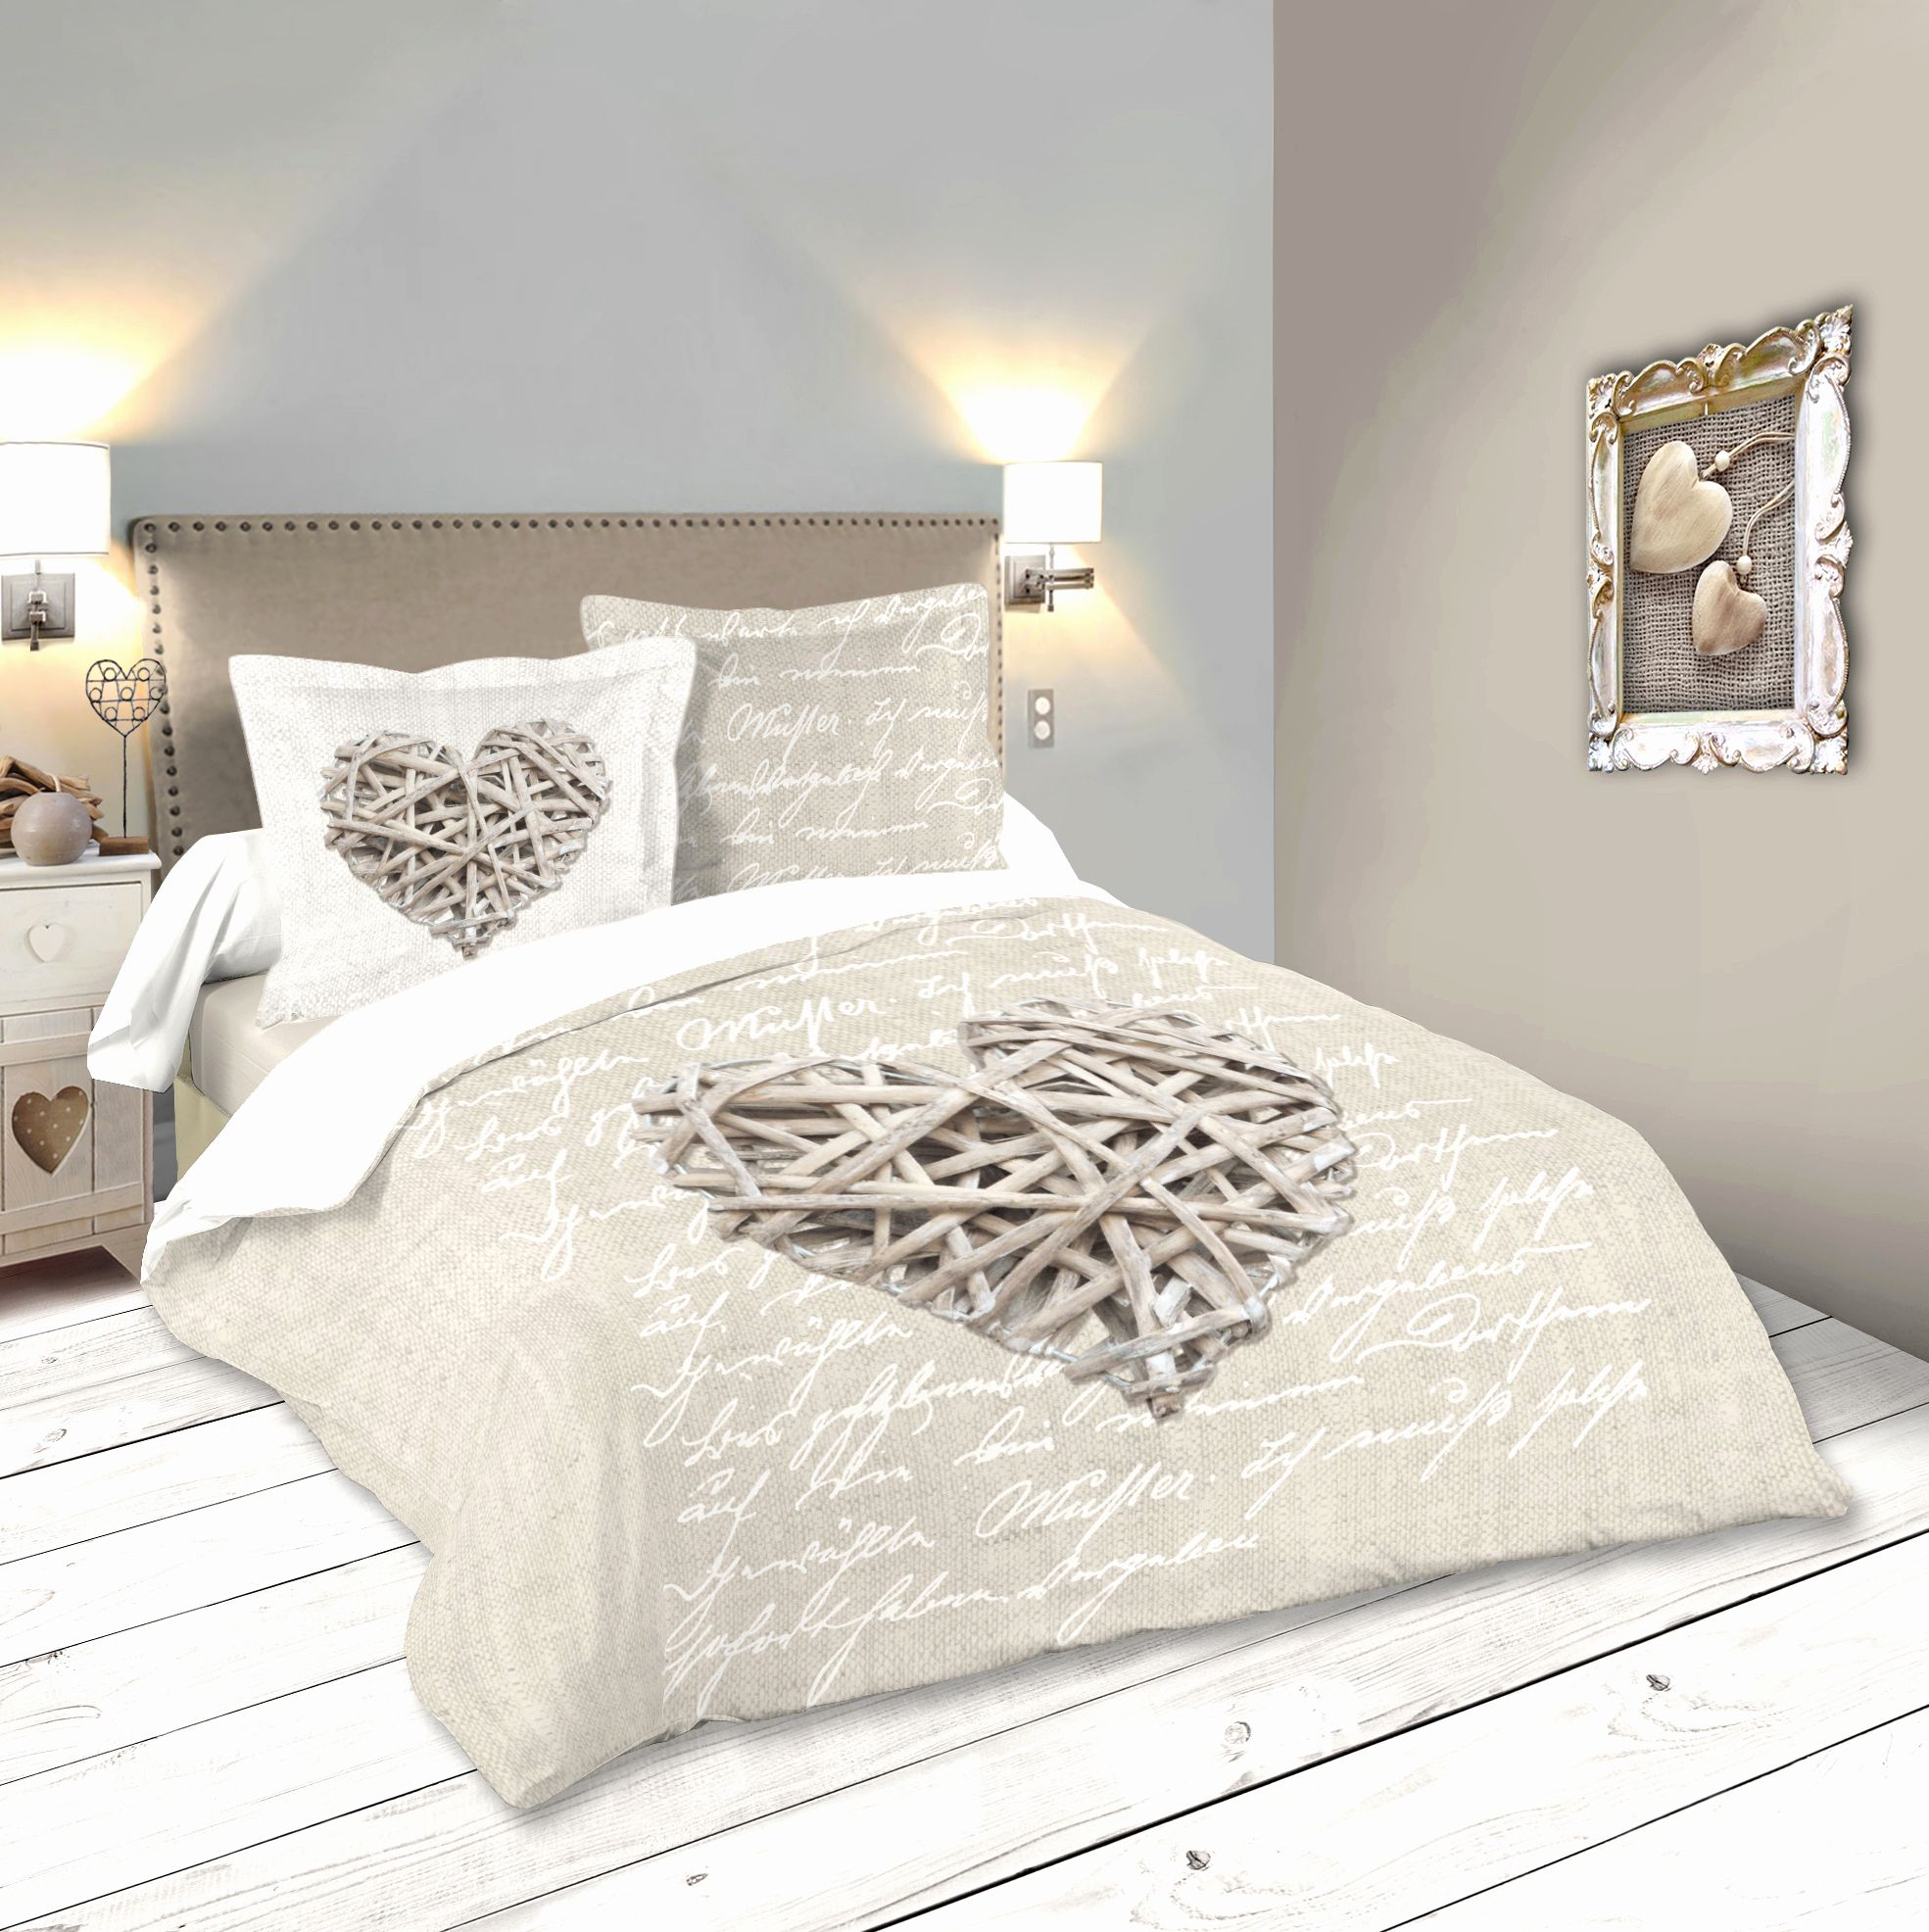 Housse De Couette 240x260 Alinea Housse De Couette 240x260 Alinea Qchardwareoverclock Idees De Decoration Creer Son Idees De Deco Home Decor Bed Fashion Room